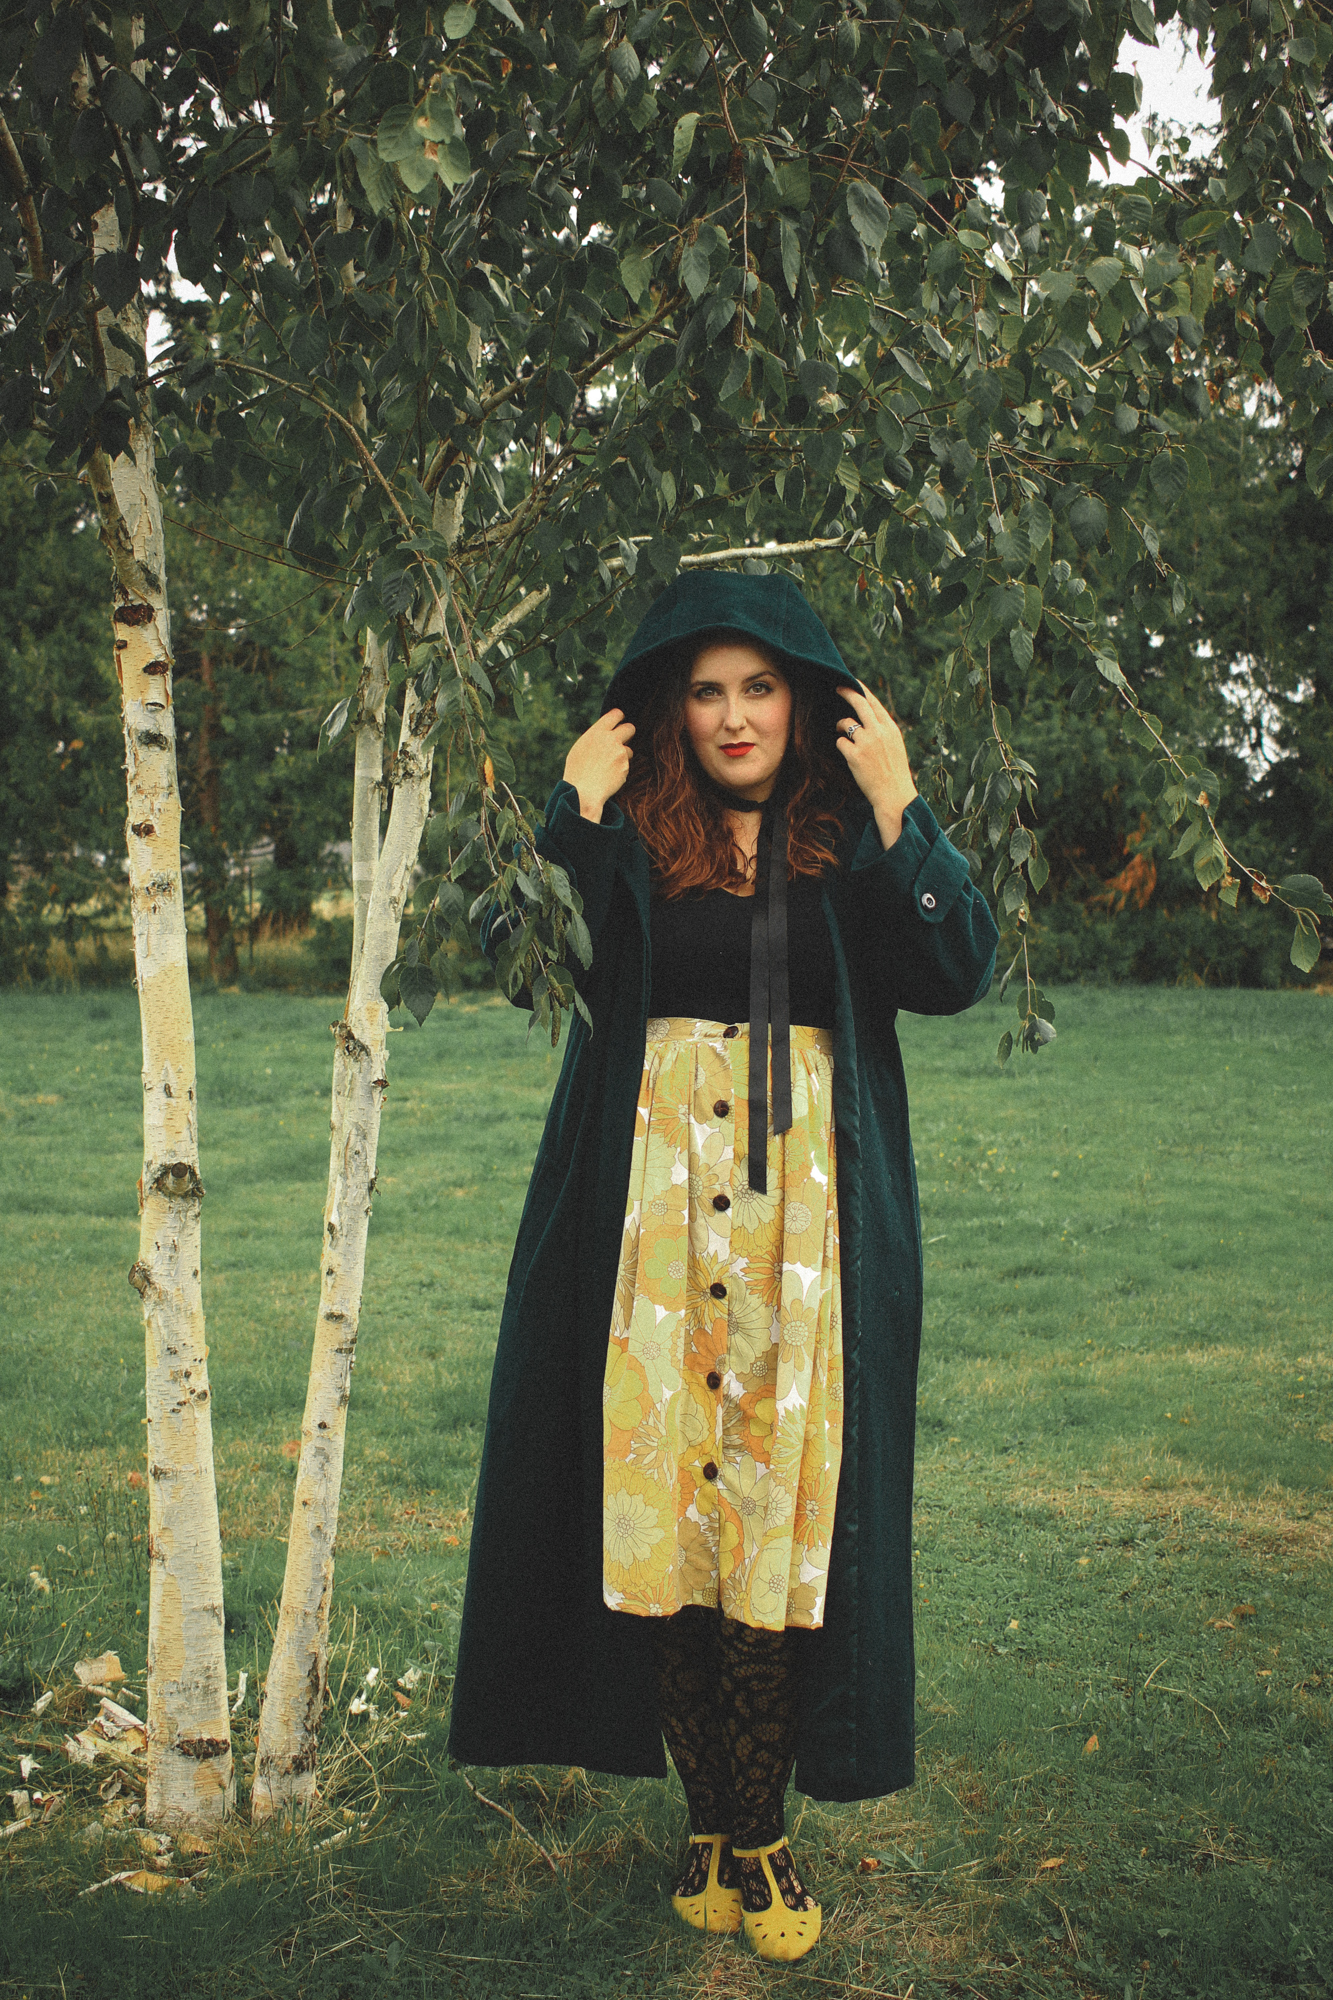 woman wearing a hooded coat and a floral skirt